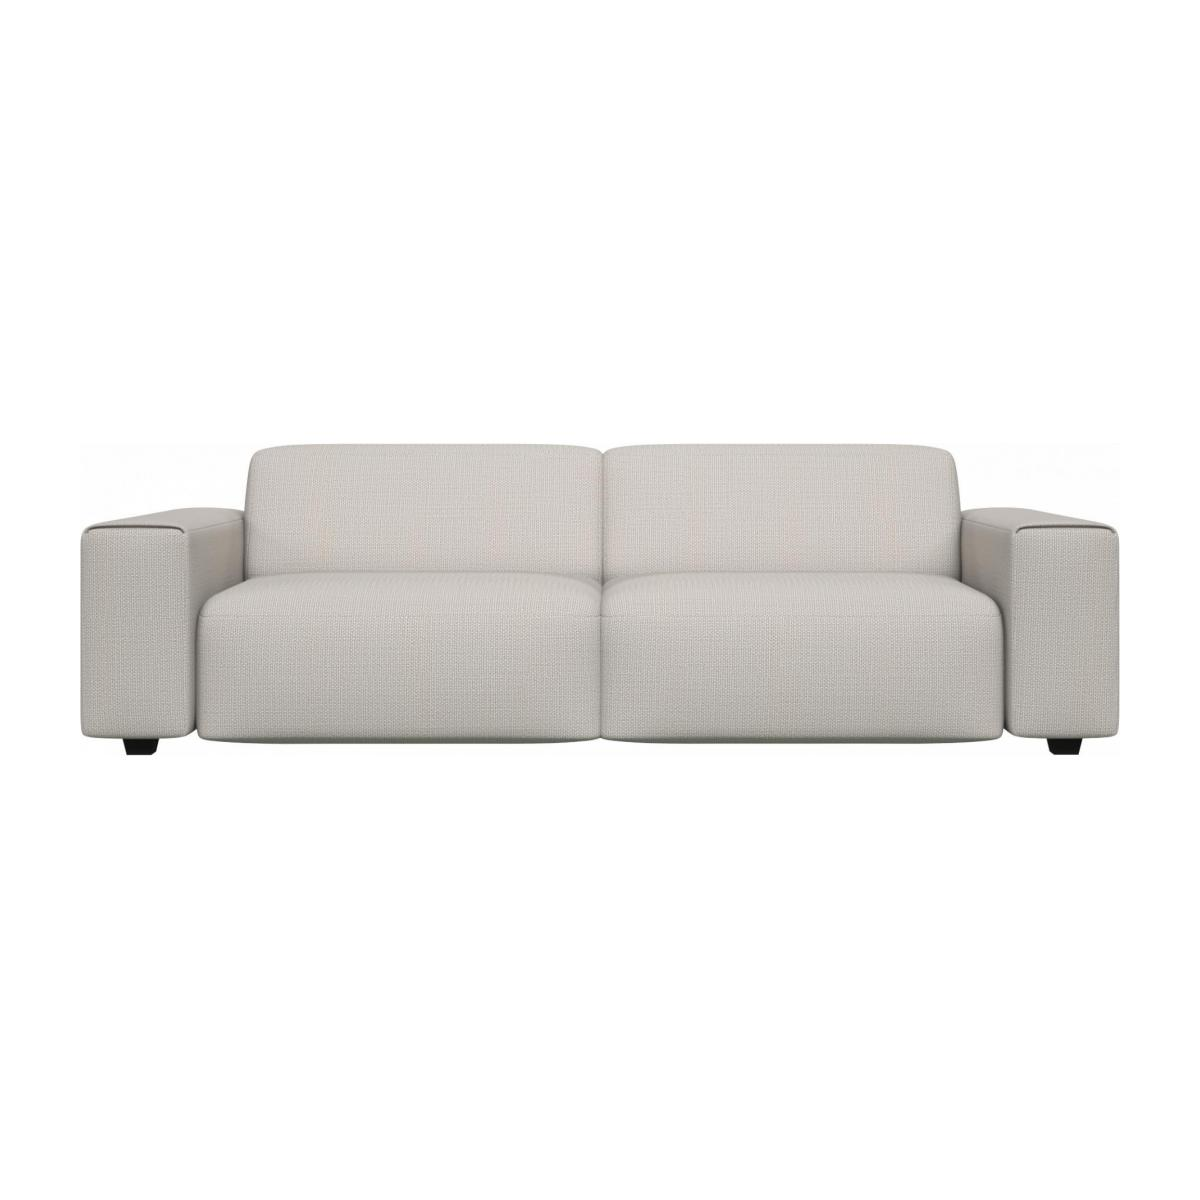 4 seater sofa in Fasoli fabric, snow white n°1